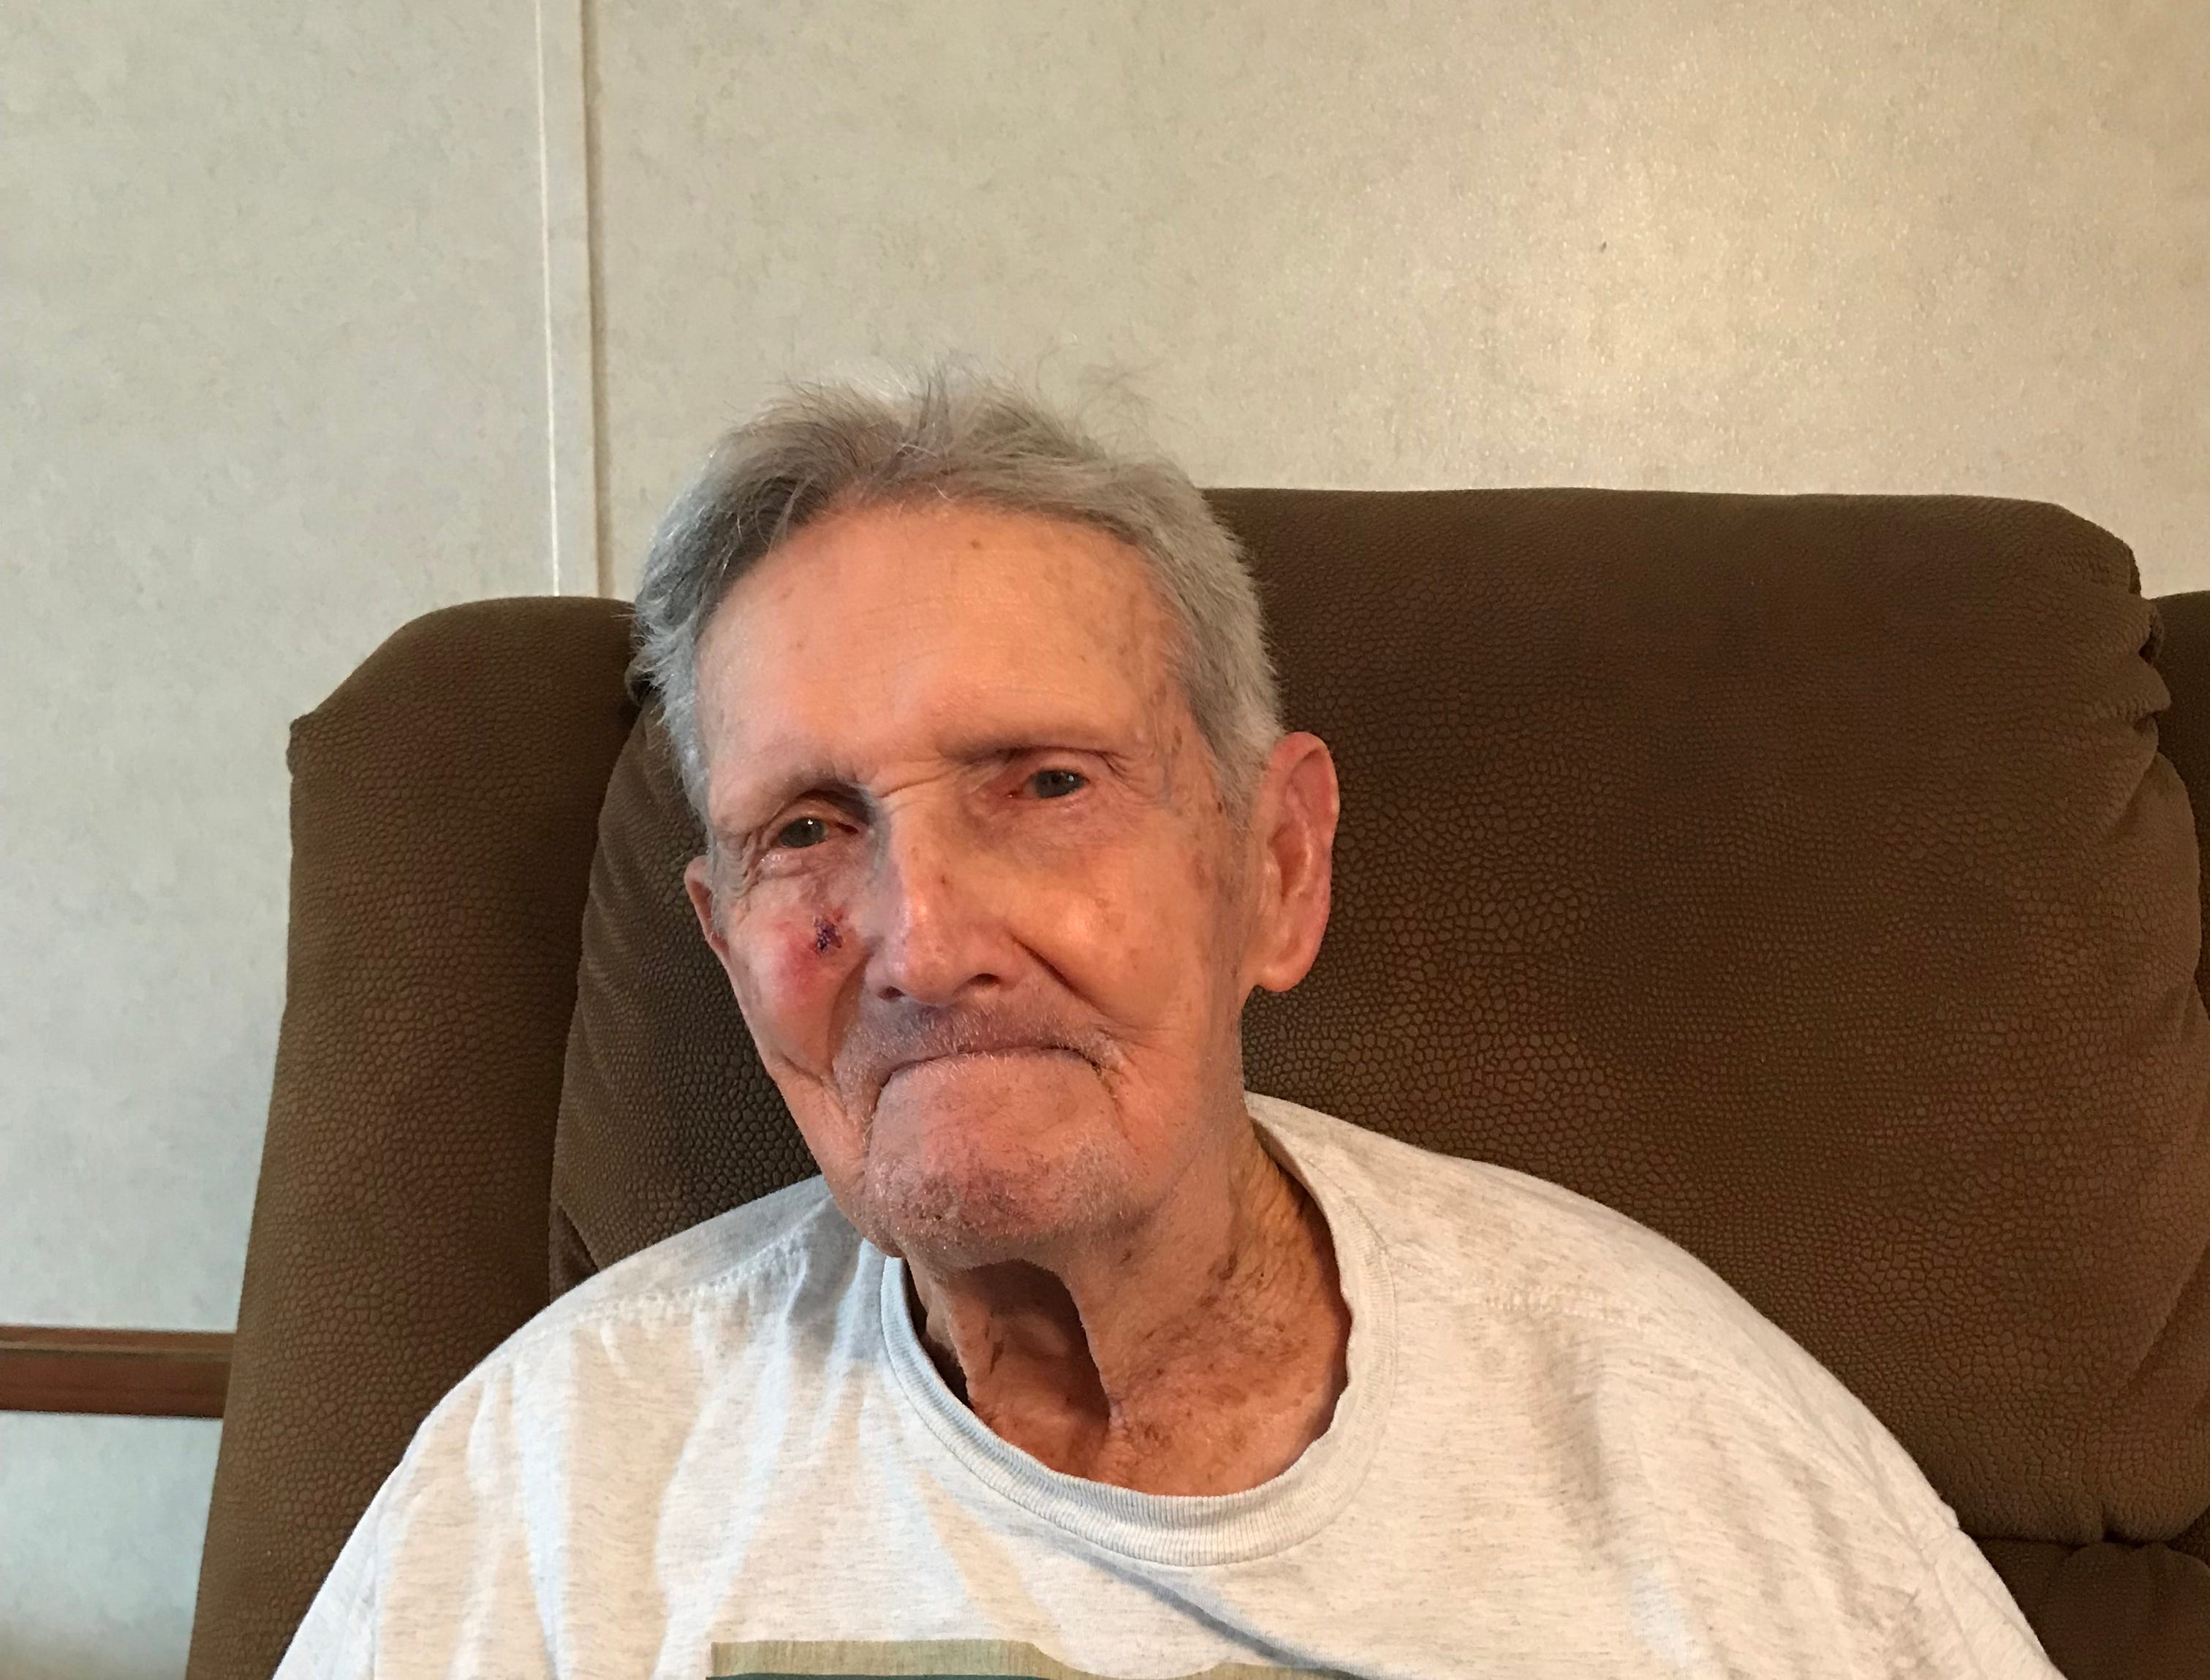 Robert Walker Sr., on his birthday Sunday. Born on Marco Island in 1921, he celebrated his 98th birthday on Sunday, Jan. 6 at his home in Cross City, Florida.